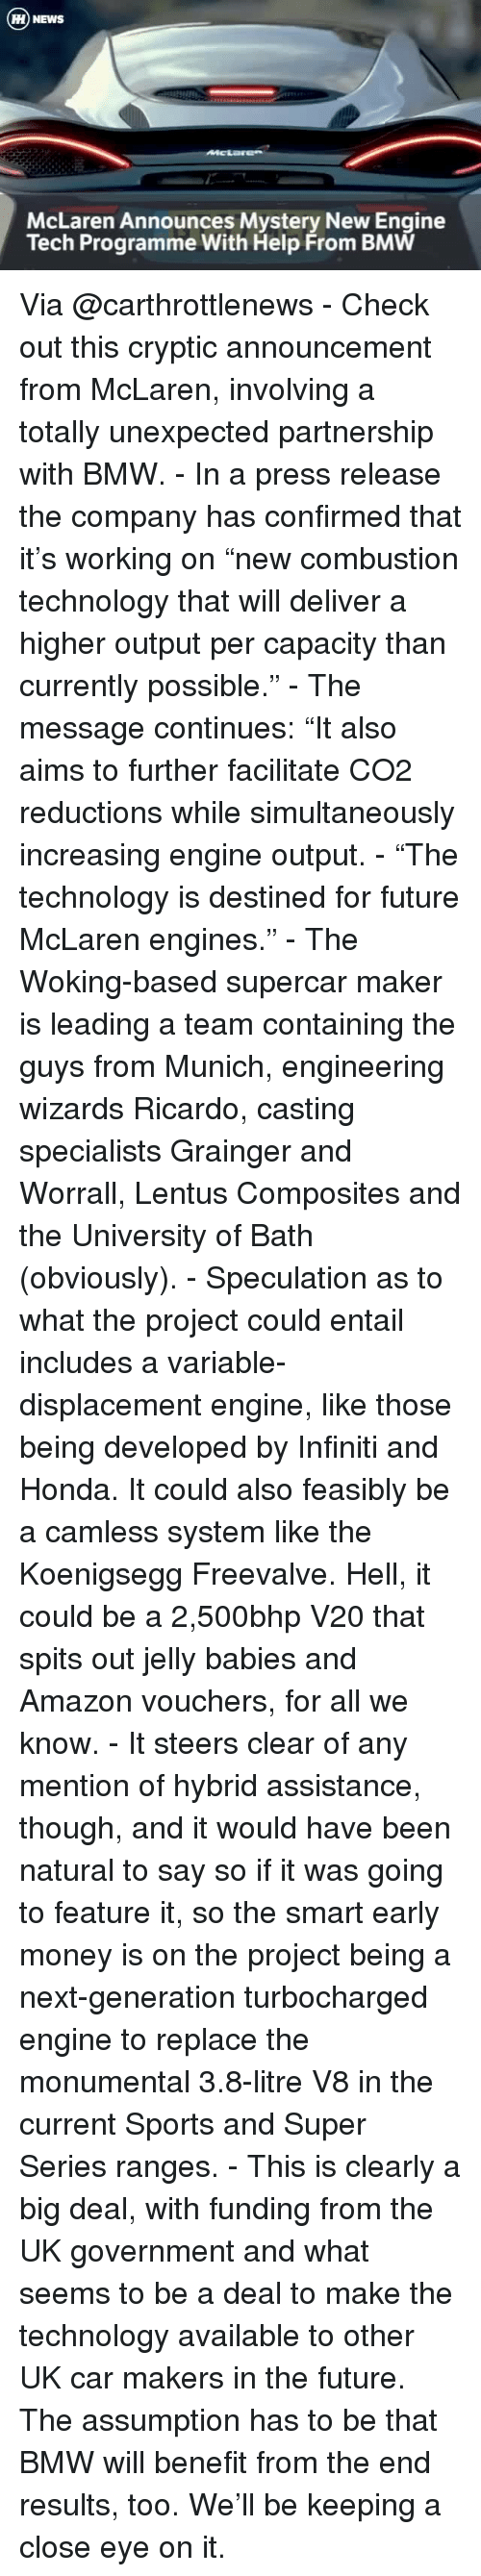 """Unexpectable: H NEWS  McLaren Announces Mystery New Engine  Tech Programme With Help From BMW Via @carthrottlenews - Check out this cryptic announcement from McLaren, involving a totally unexpected partnership with BMW. - In a press release the company has confirmed that it's working on """"new combustion technology that will deliver a higher output per capacity than currently possible."""" - The message continues: """"It also aims to further facilitate CO2 reductions while simultaneously increasing engine output. - """"The technology is destined for future McLaren engines."""" - The Woking-based supercar maker is leading a team containing the guys from Munich, engineering wizards Ricardo, casting specialists Grainger and Worrall, Lentus Composites and the University of Bath (obviously). - Speculation as to what the project could entail includes a variable-displacement engine, like those being developed by Infiniti and Honda. It could also feasibly be a camless system like the Koenigsegg Freevalve. Hell, it could be a 2,500bhp V20 that spits out jelly babies and Amazon vouchers, for all we know. - It steers clear of any mention of hybrid assistance, though, and it would have been natural to say so if it was going to feature it, so the smart early money is on the project being a next-generation turbocharged engine to replace the monumental 3.8-litre V8 in the current Sports and Super Series ranges. - This is clearly a big deal, with funding from the UK government and what seems to be a deal to make the technology available to other UK car makers in the future. The assumption has to be that BMW will benefit from the end results, too. We'll be keeping a close eye on it."""